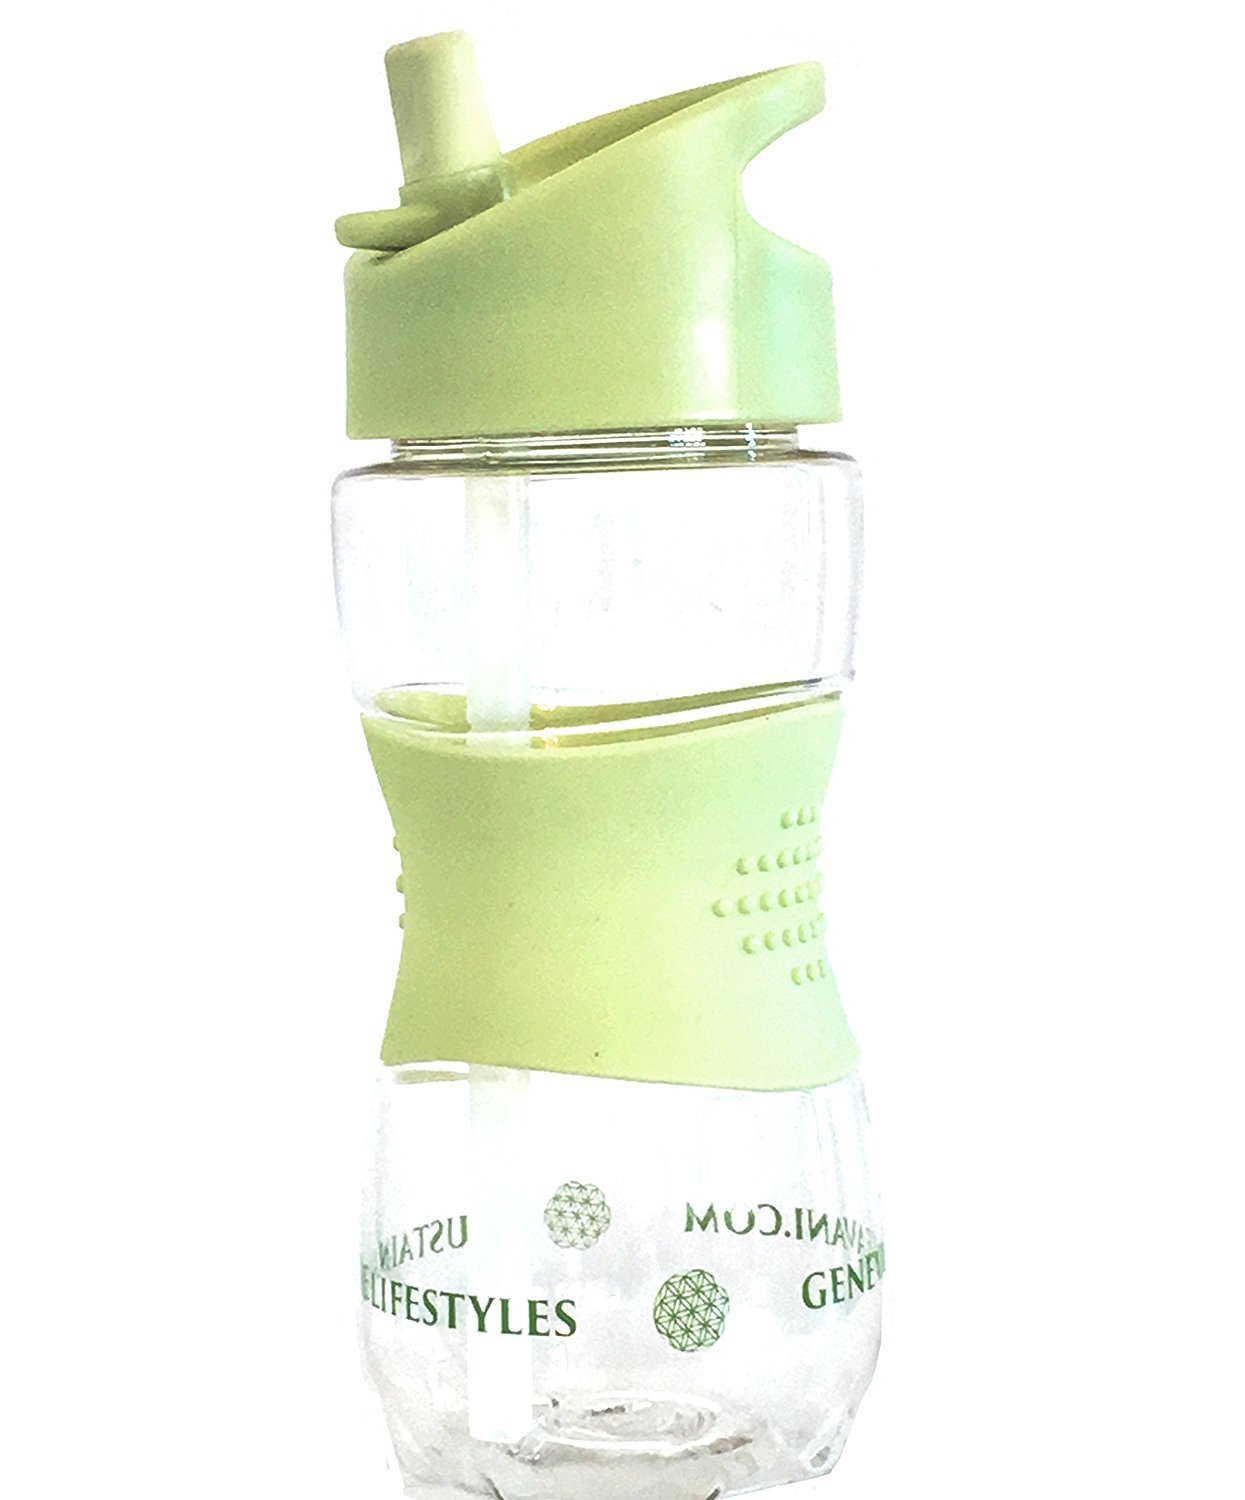 Premium Hygienic Kids Straw Tritan Water Bottle - Anti Mold - BPA Free. Complete with Stainless Steel Straw Cleaning Brush Genevieve Avani Lifestyles